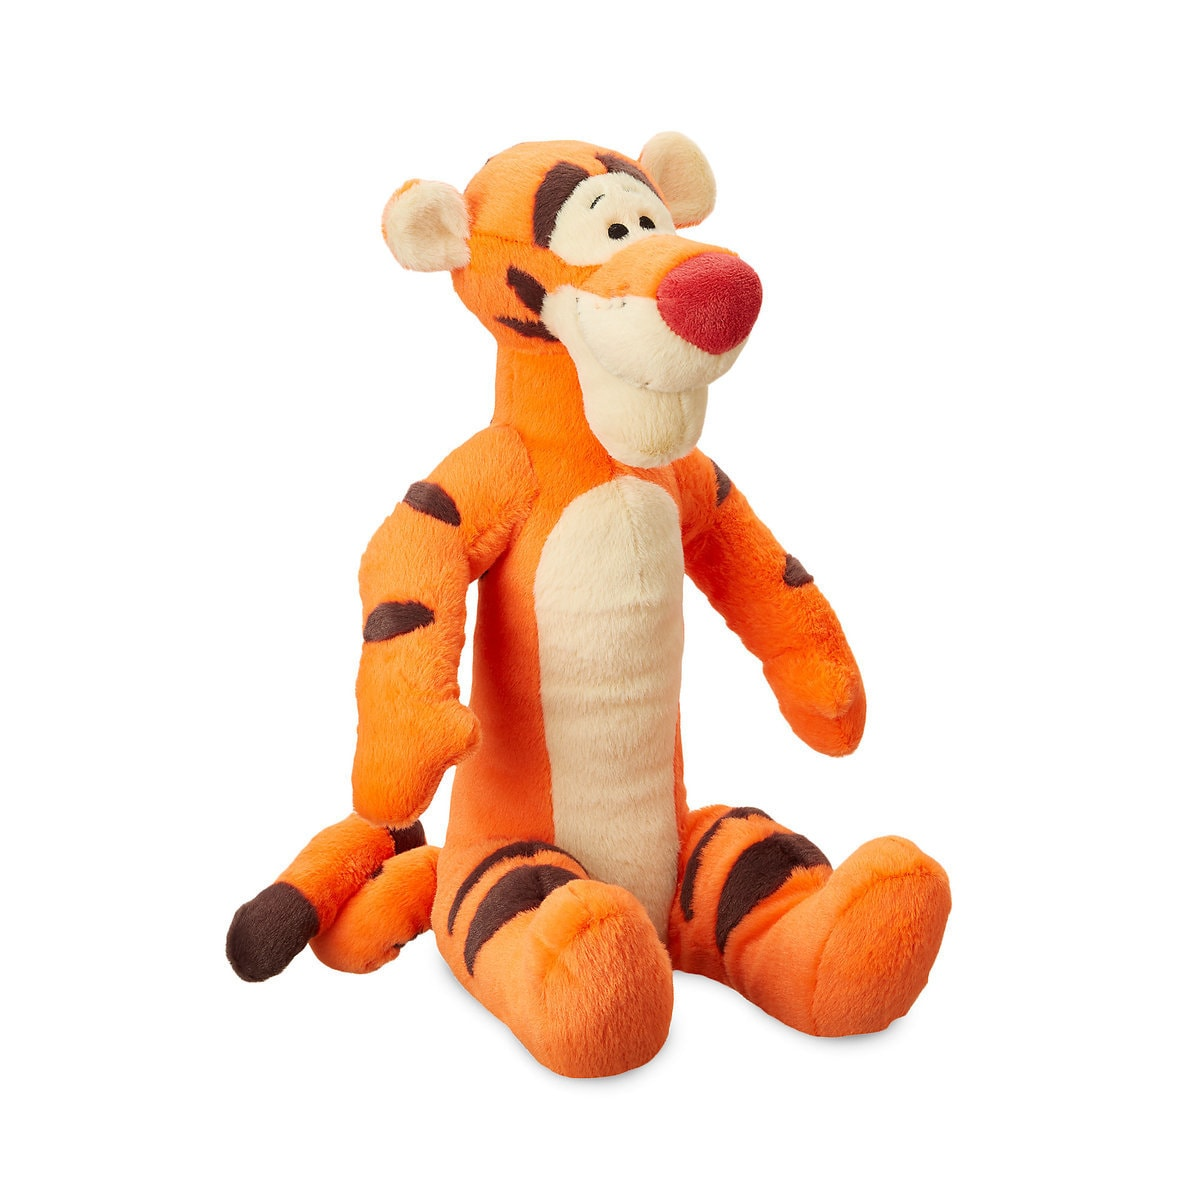 d431e8f2c30 Product Image of Tigger Plush - Winnie the Pooh - Medium # 1